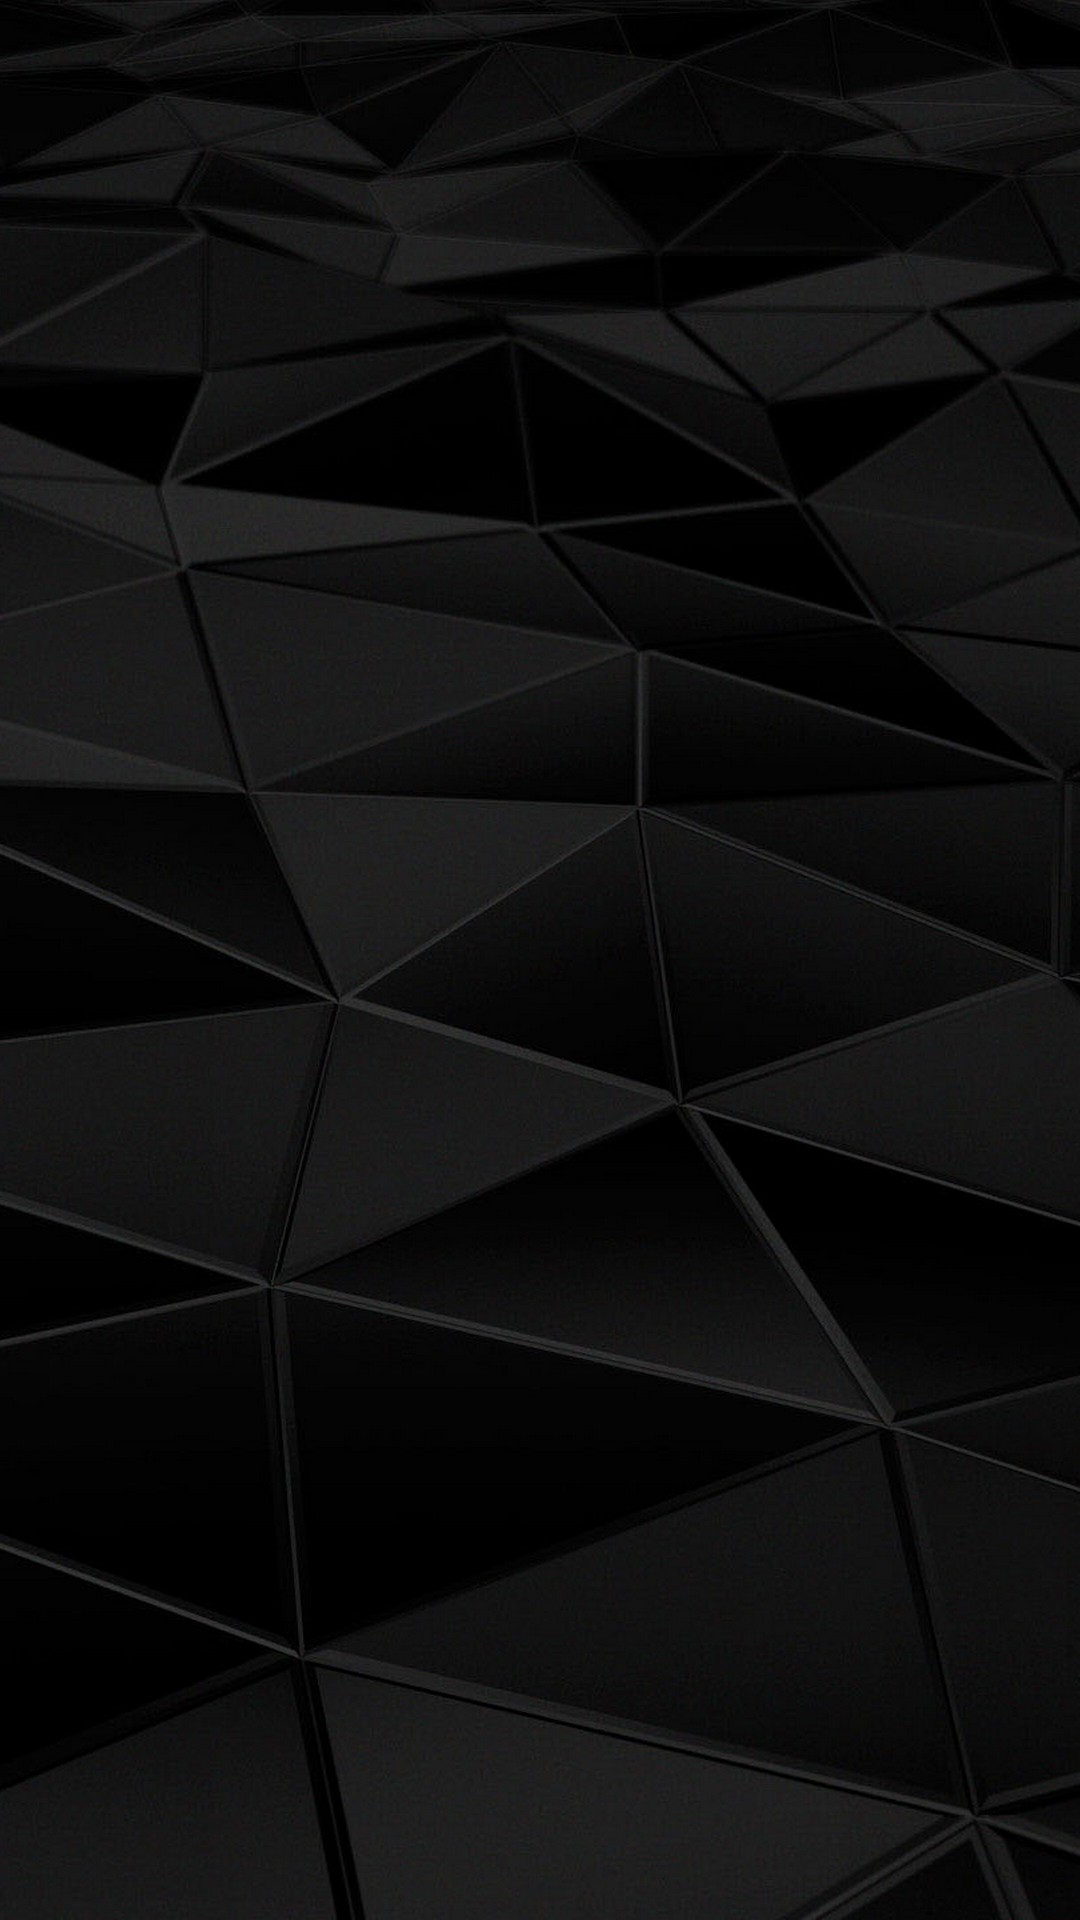 Android Wallpaper HD Black